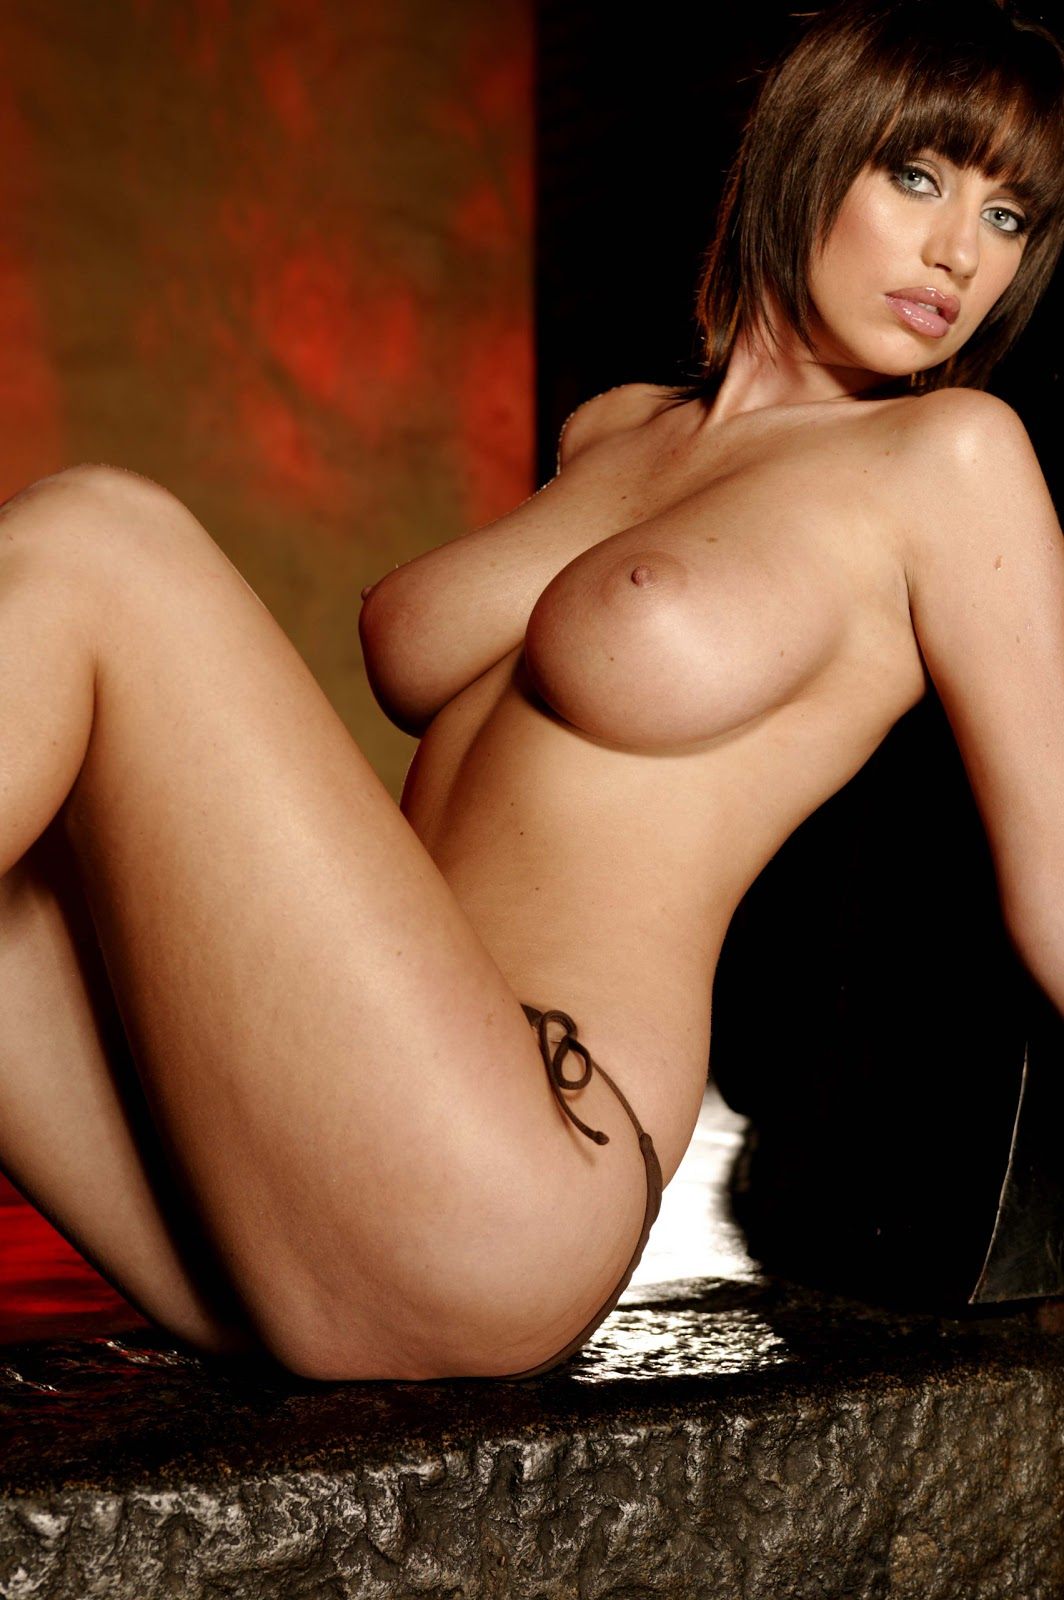 Sophie howard nude pictures